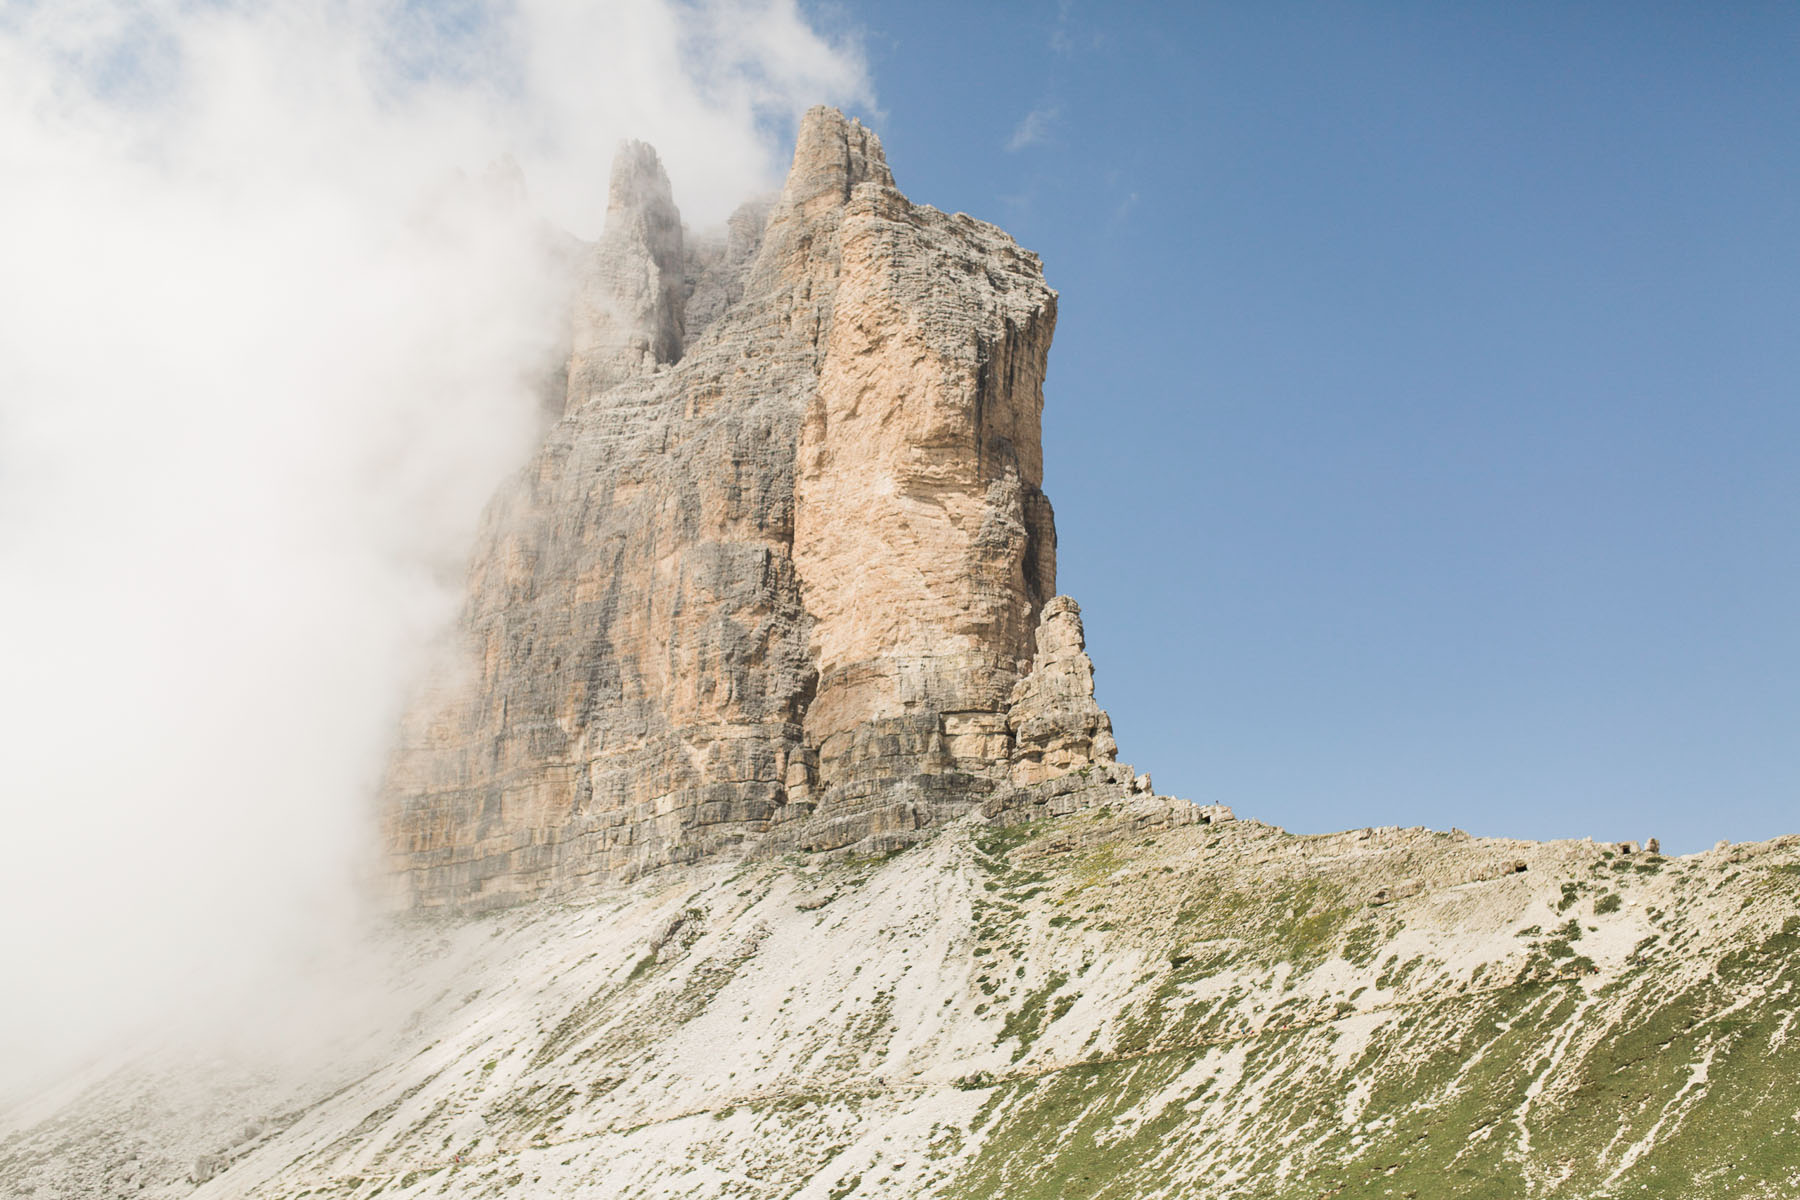 dolomites-adventure-wedding-elopement-photographer-europe-hiking-elopement-in-the-mountains